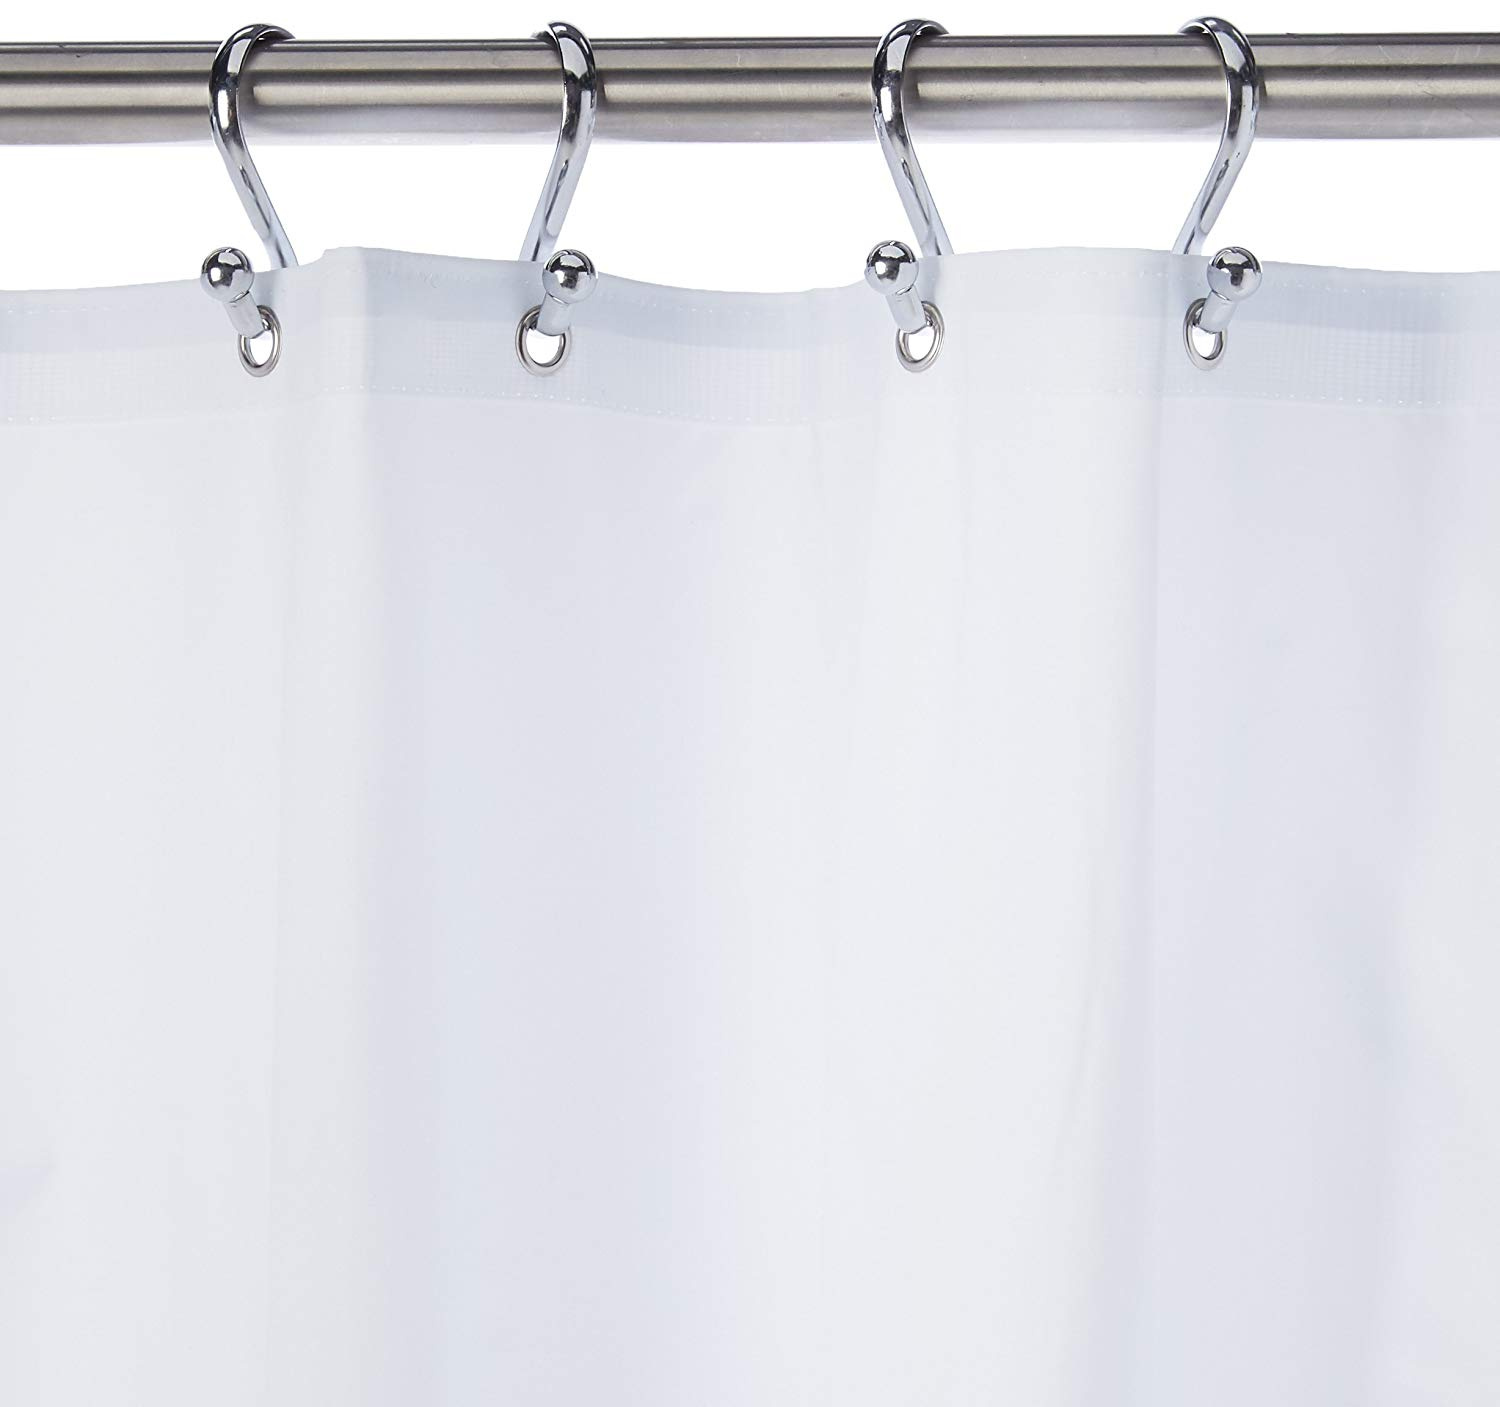 3c10fdb450d Shower Curtain Weights Homeware: Buy Online from Fishpond.co.nz